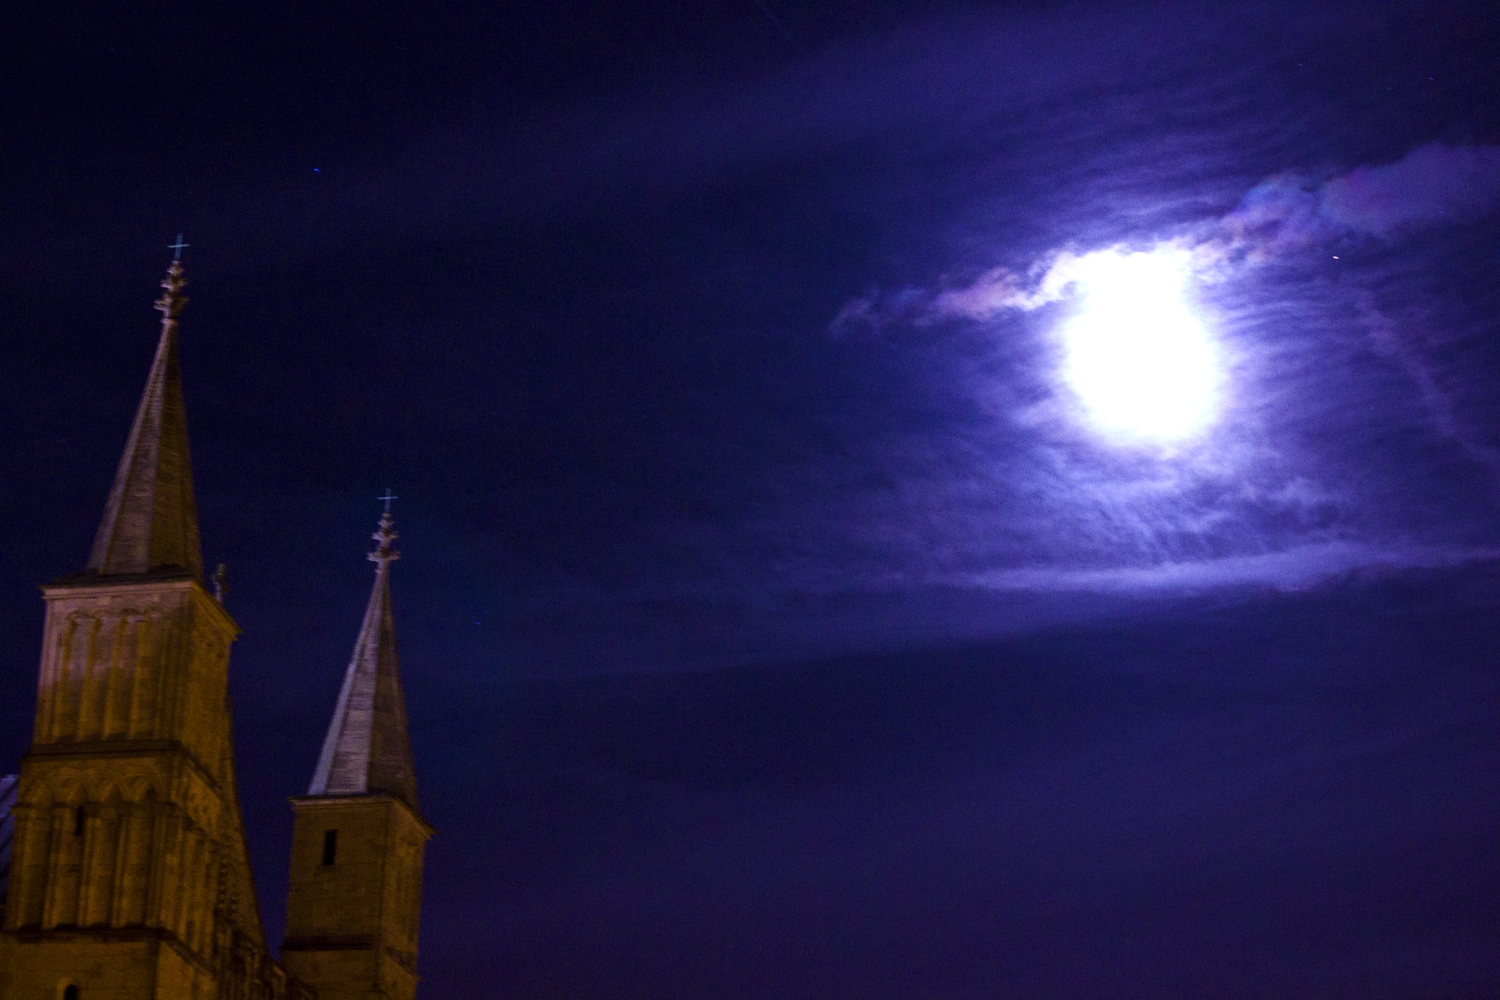 gloucester castle cathedral full moon nighttime blue midnight purple